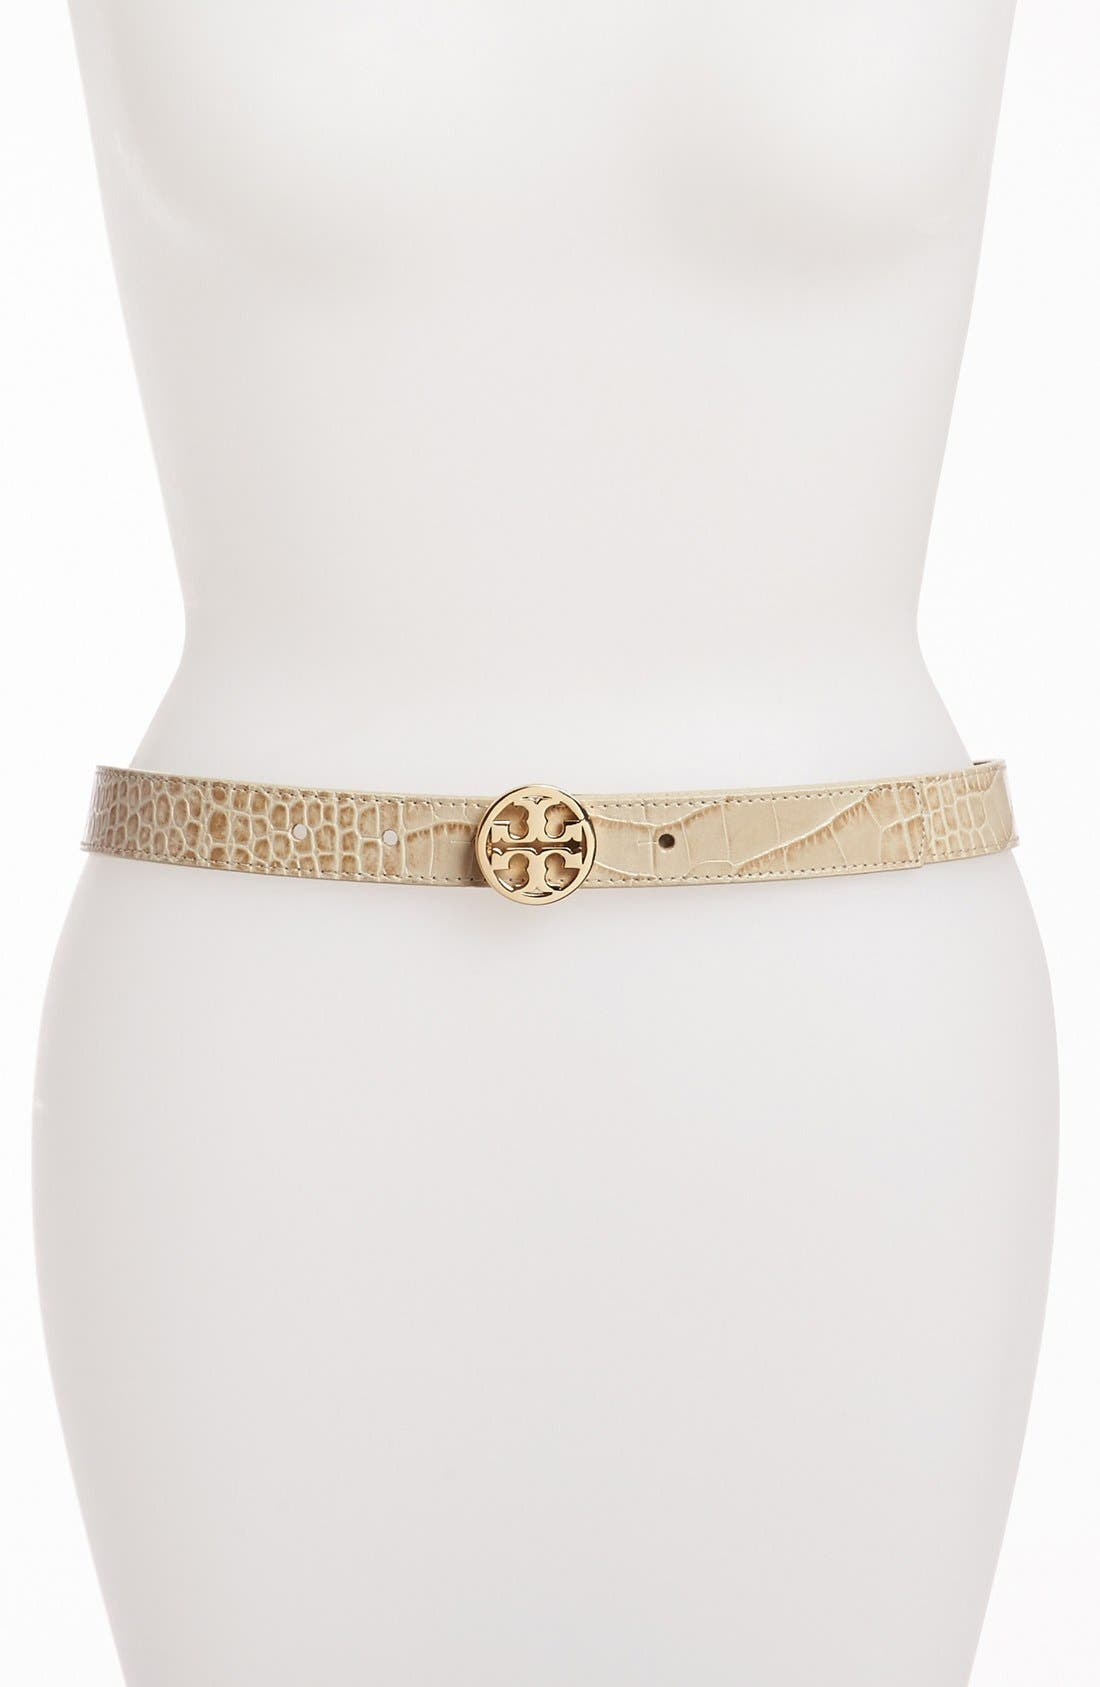 Main Image - Tory Burch Croc Embossed Leather Belt